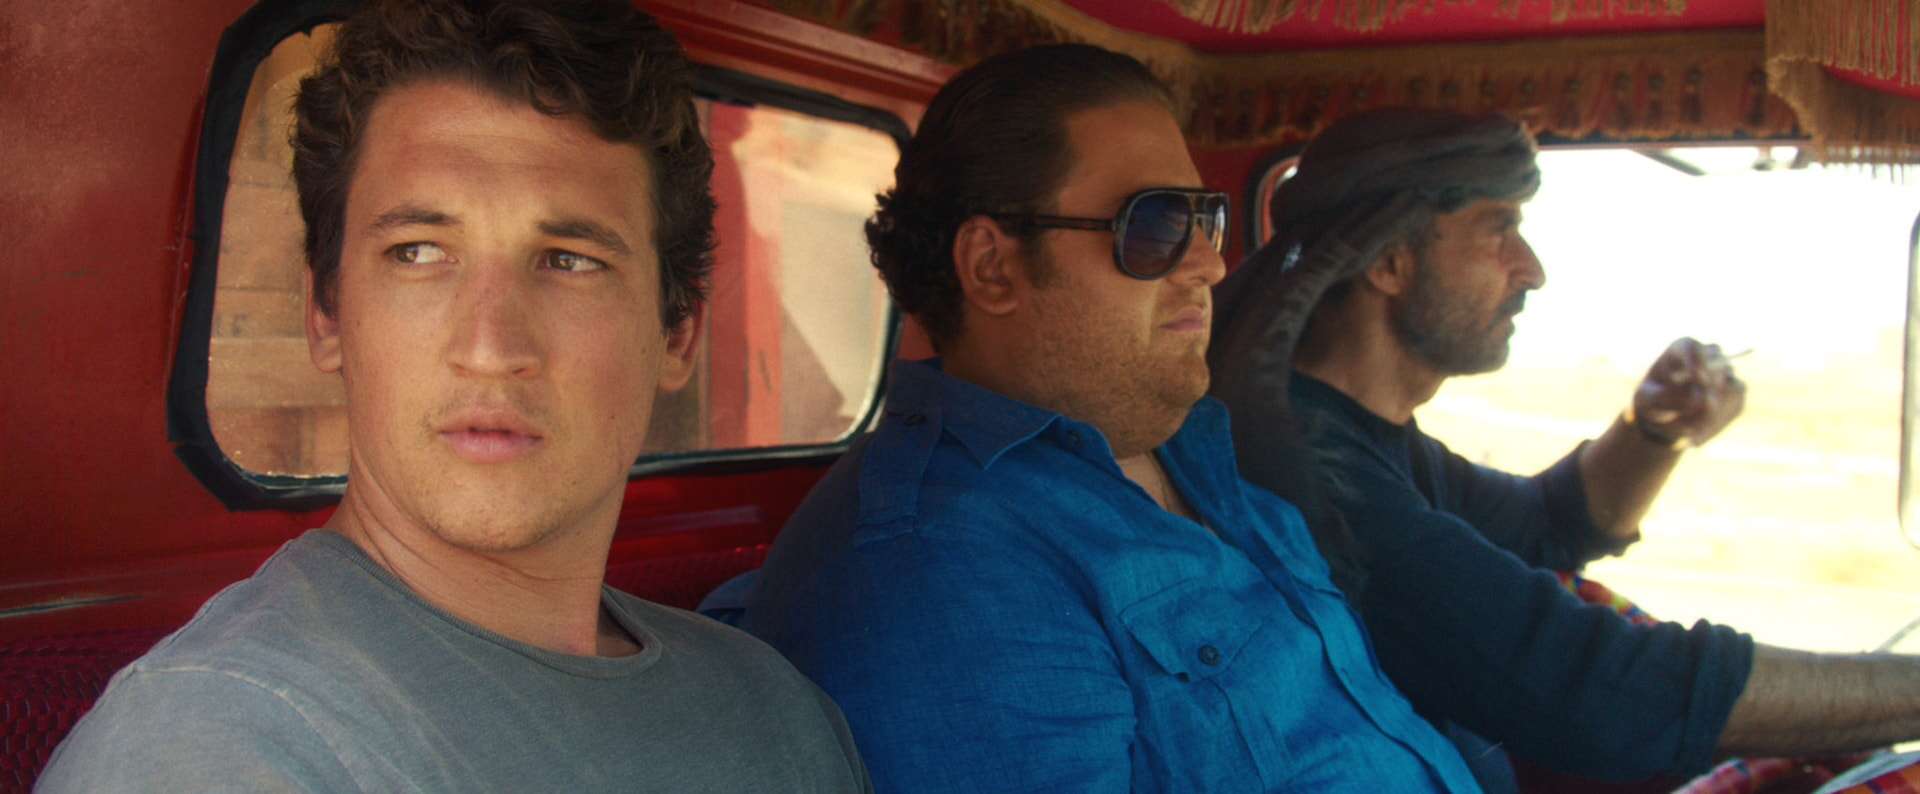 """MILES TELLER as David, JONAH HILL as Efraim and SHAUN TOUB as Marlboro in Warner Bros. Pictures' comedic drama (based on true events) """"WAR DOGS,"""" a Warner Bros. Pictures release."""